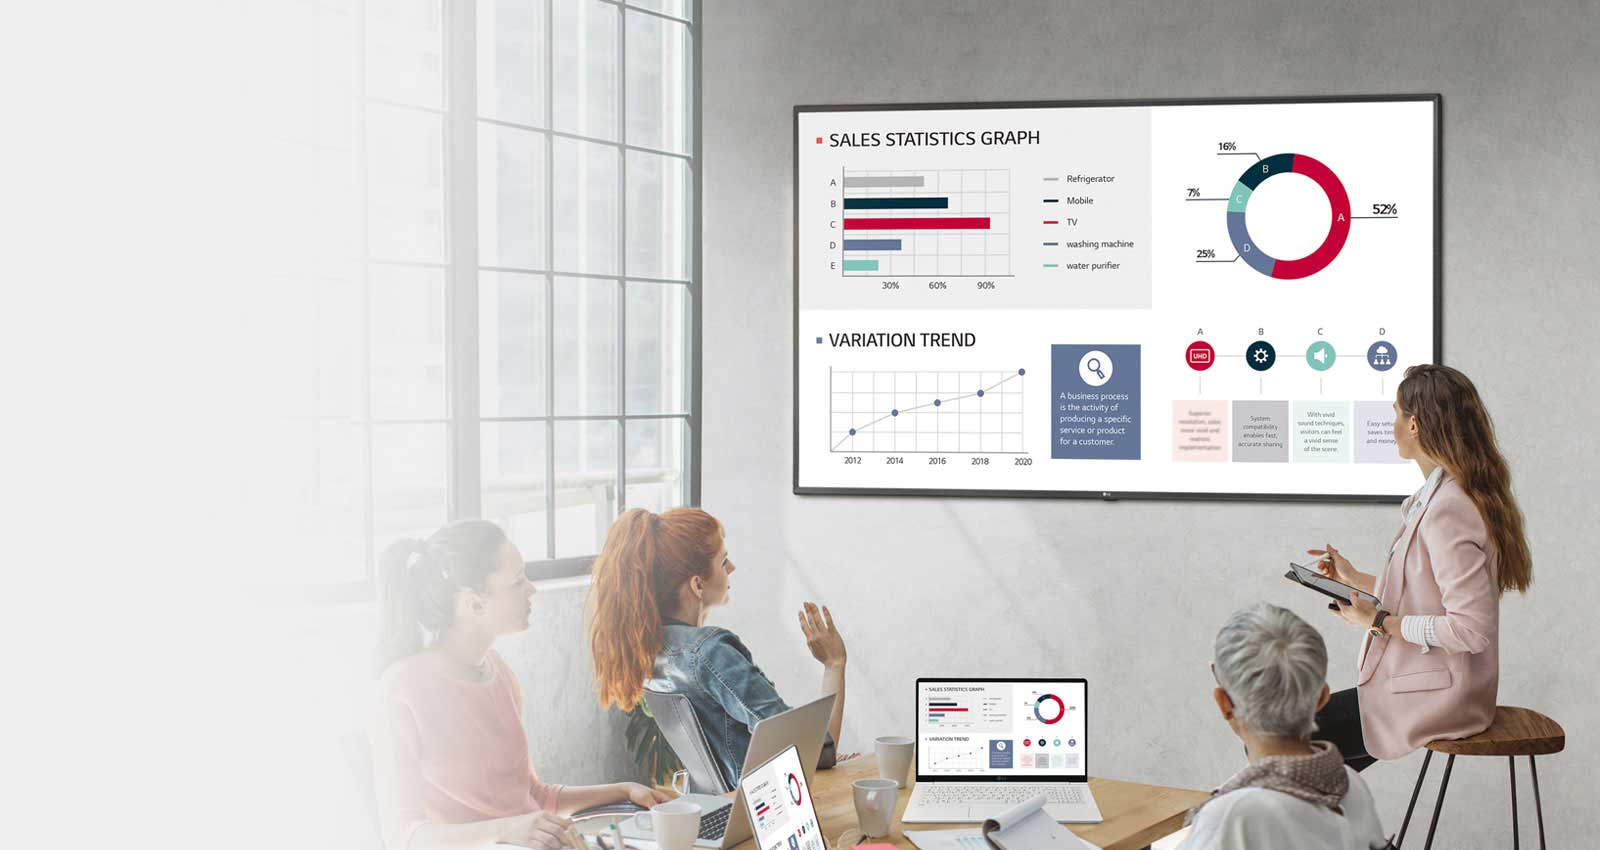 43UL3G-B Display Monitor in Conference Room